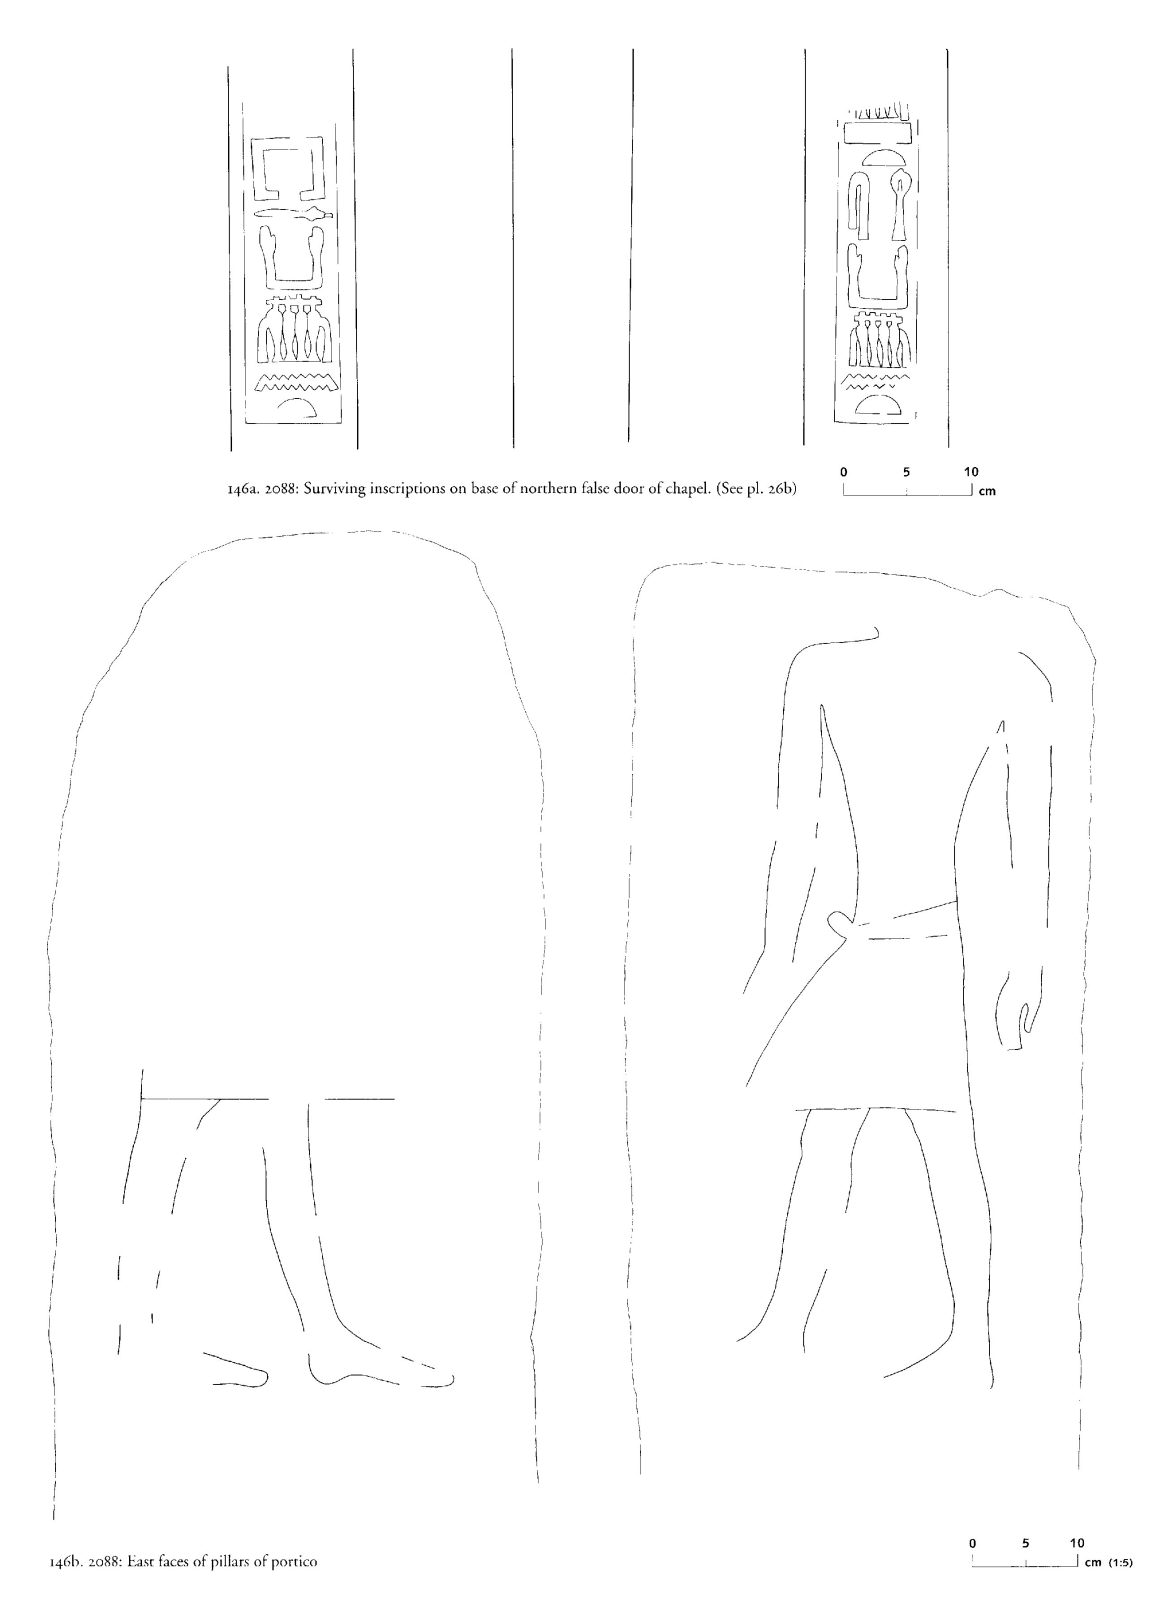 Drawings: G 2088: relief from chapel, N false door, base; and portico, pillars, E faces